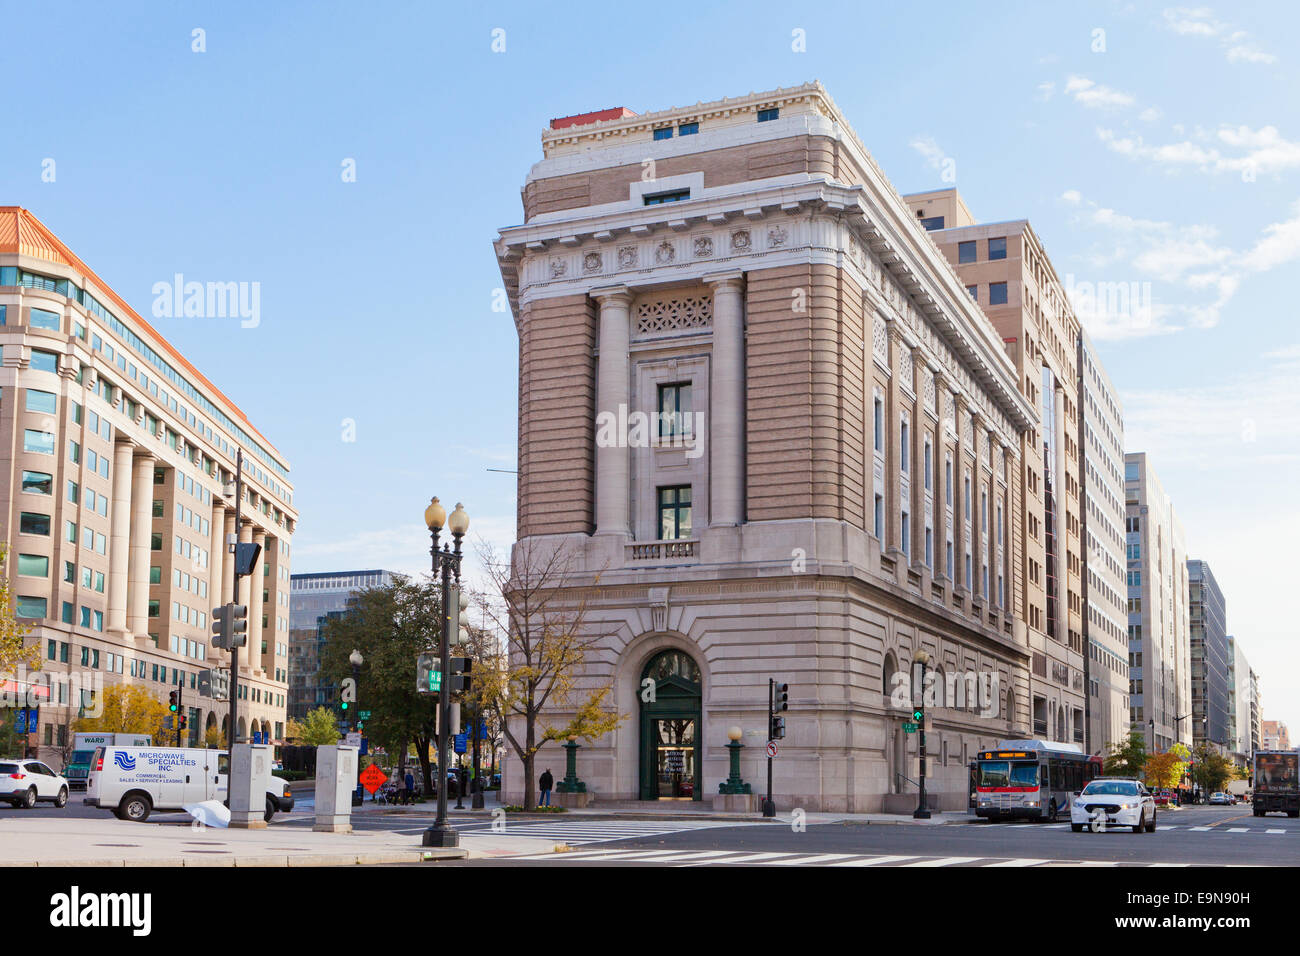 National Museum of Women in the Arts - Washington DC, USA - Stock Image